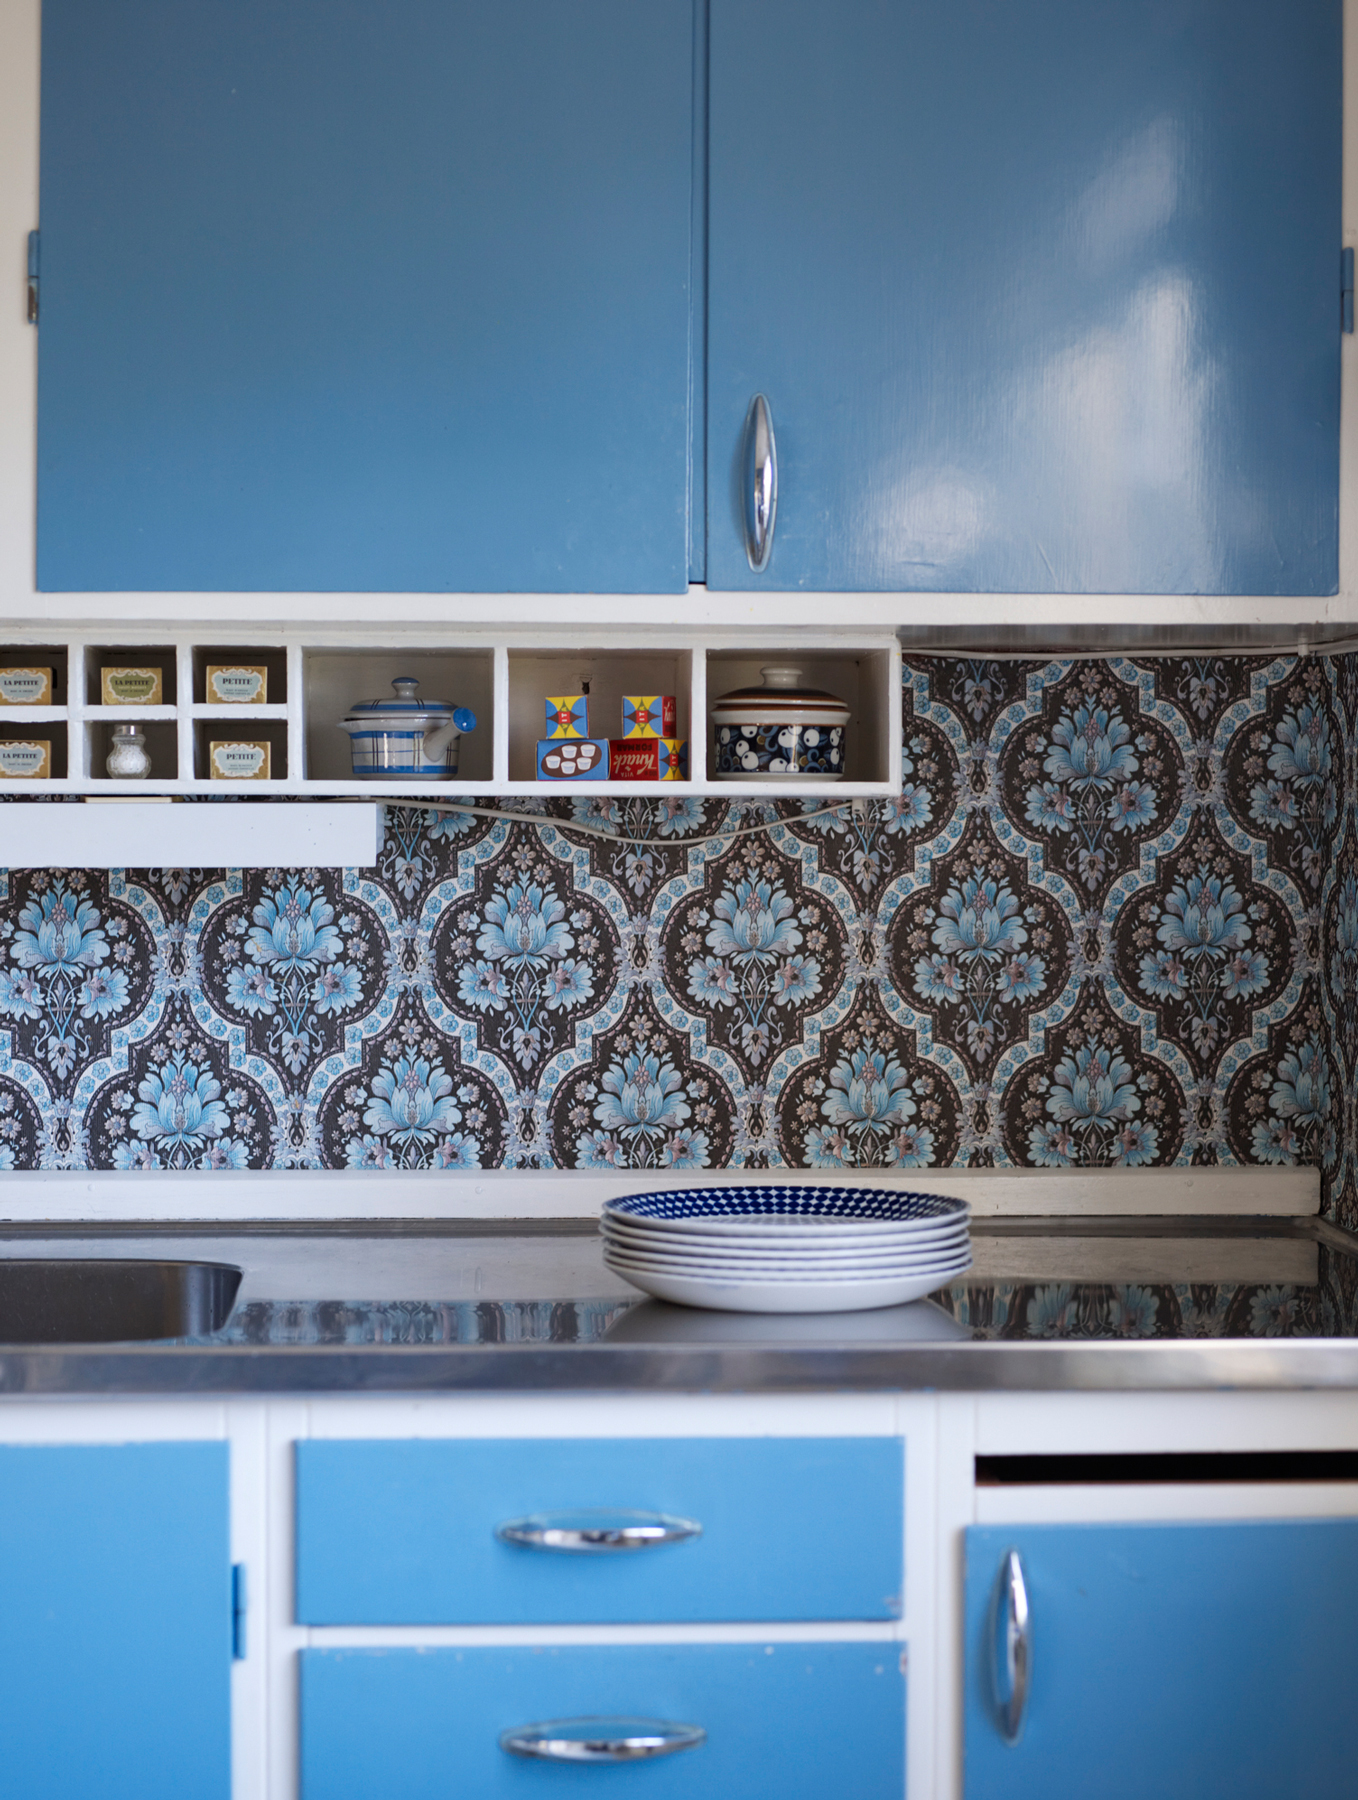 Vintage and retro kitchen decor ideas - kitchen with retro blue cabinets